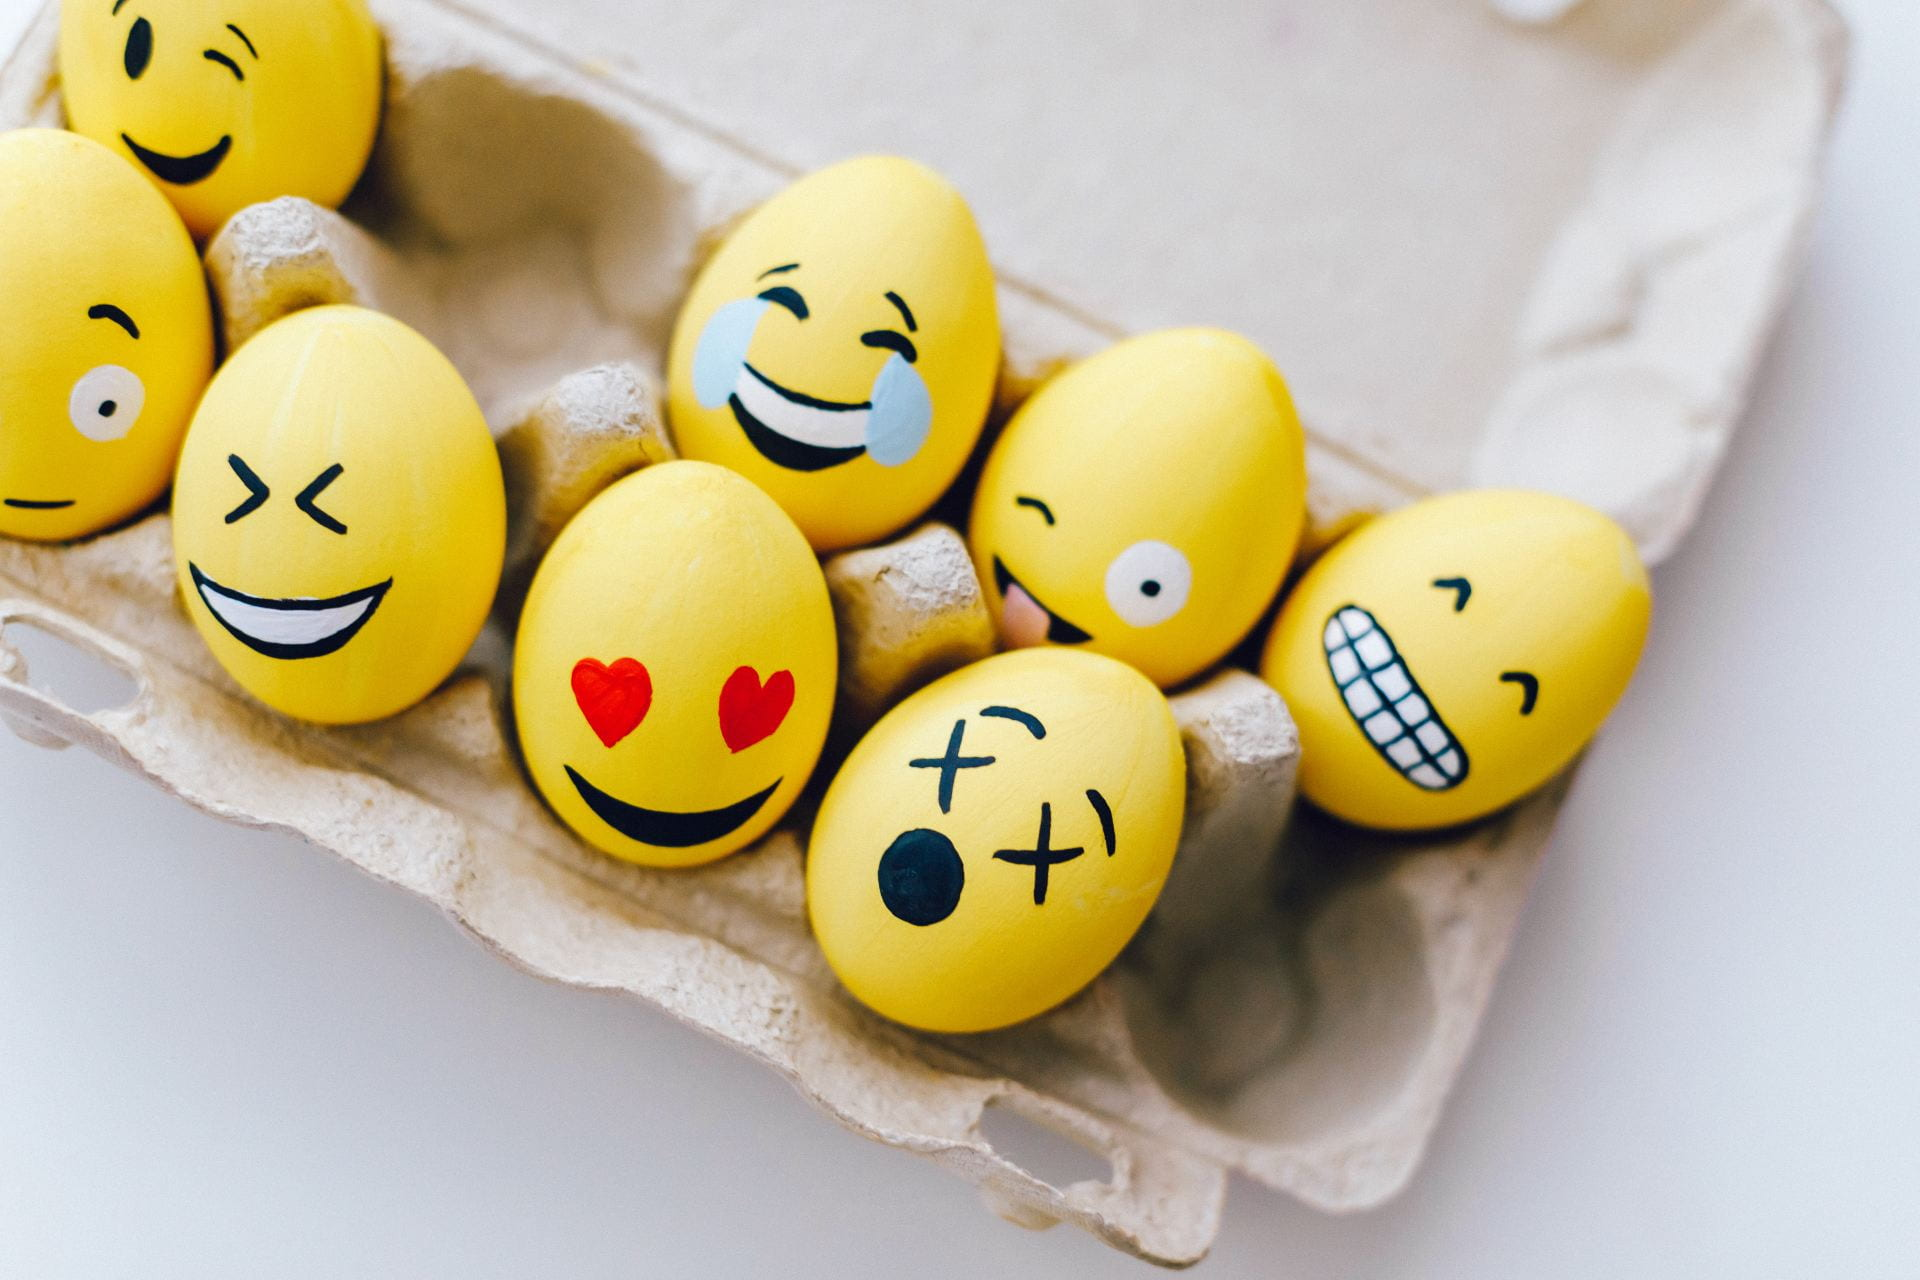 [Alt-text: Yellow painted eggs with various facial expressions.]